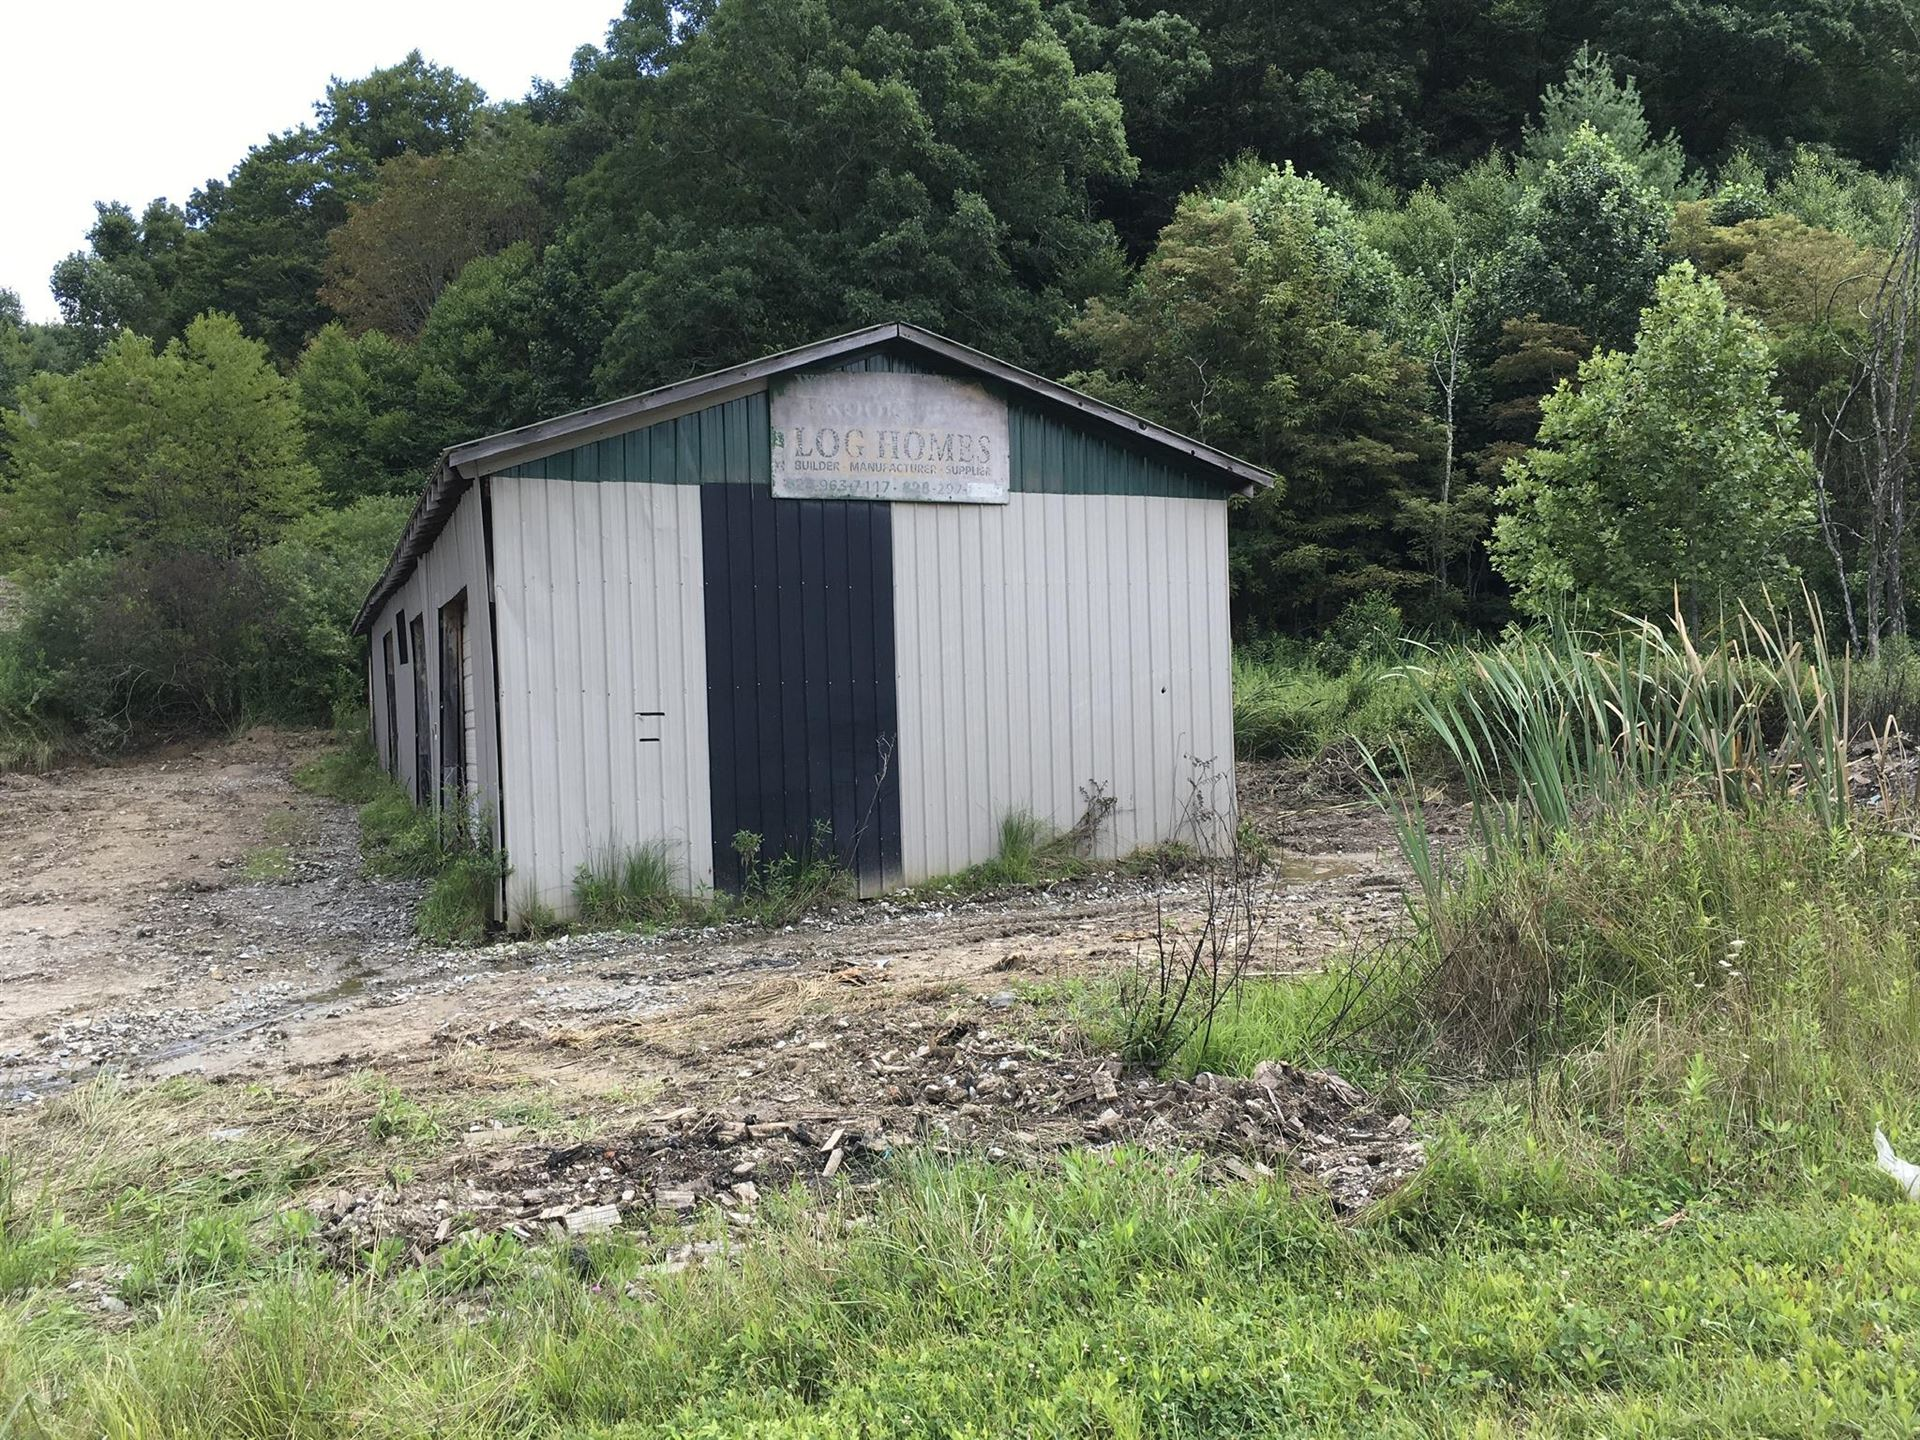 Photo of Tbd Highway 421, Trade, TN 37691 (MLS # 9912522)